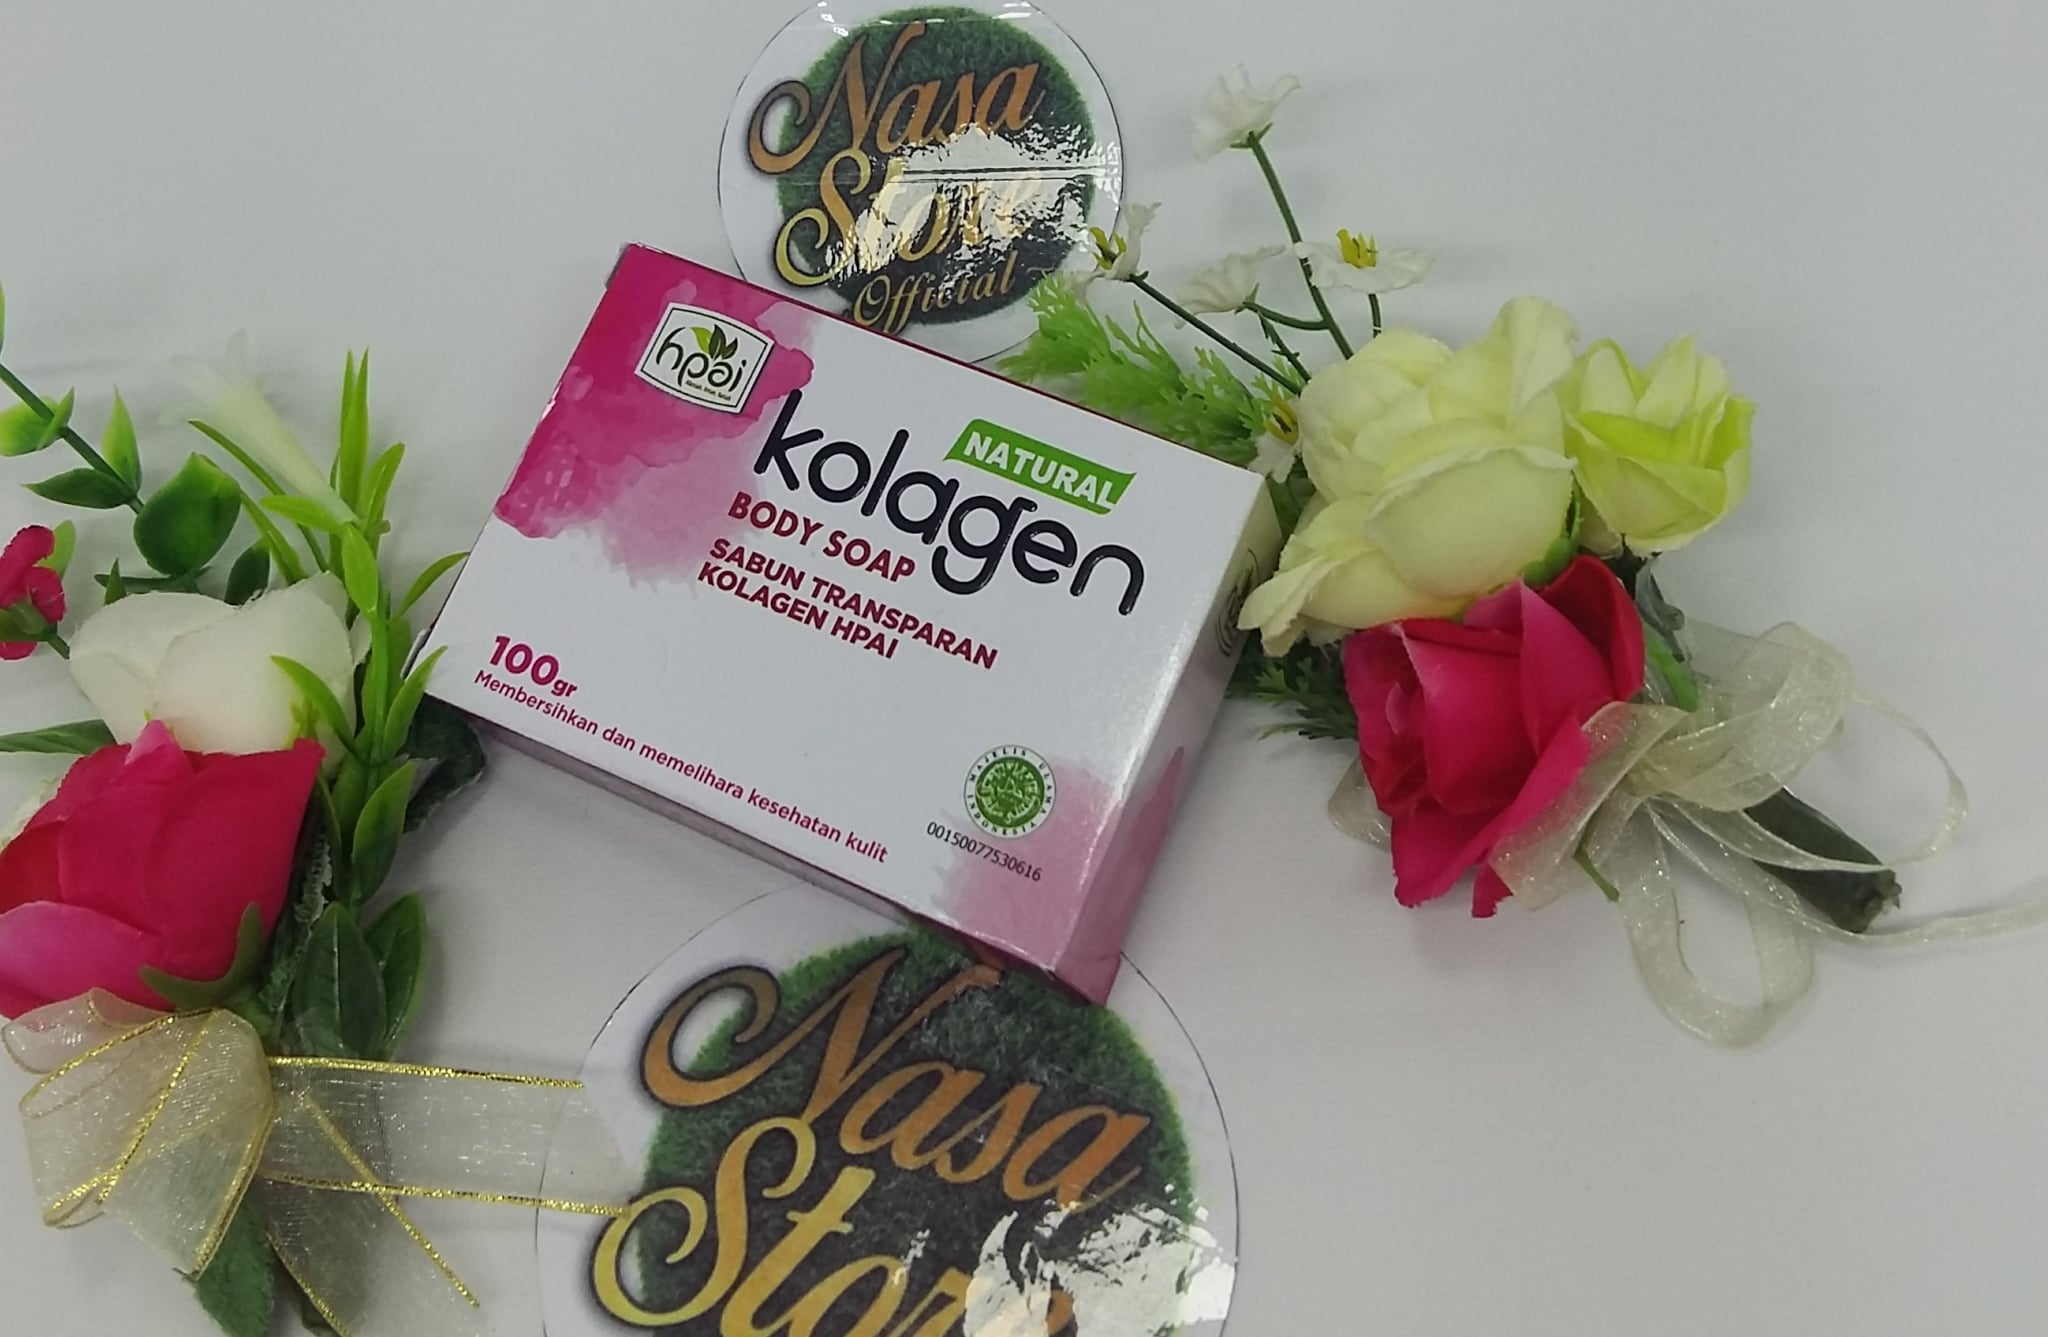 Jual Sabun Natural Kolagen Body Soap Transparan Hpai 100gr Nasa Store Tokopedia